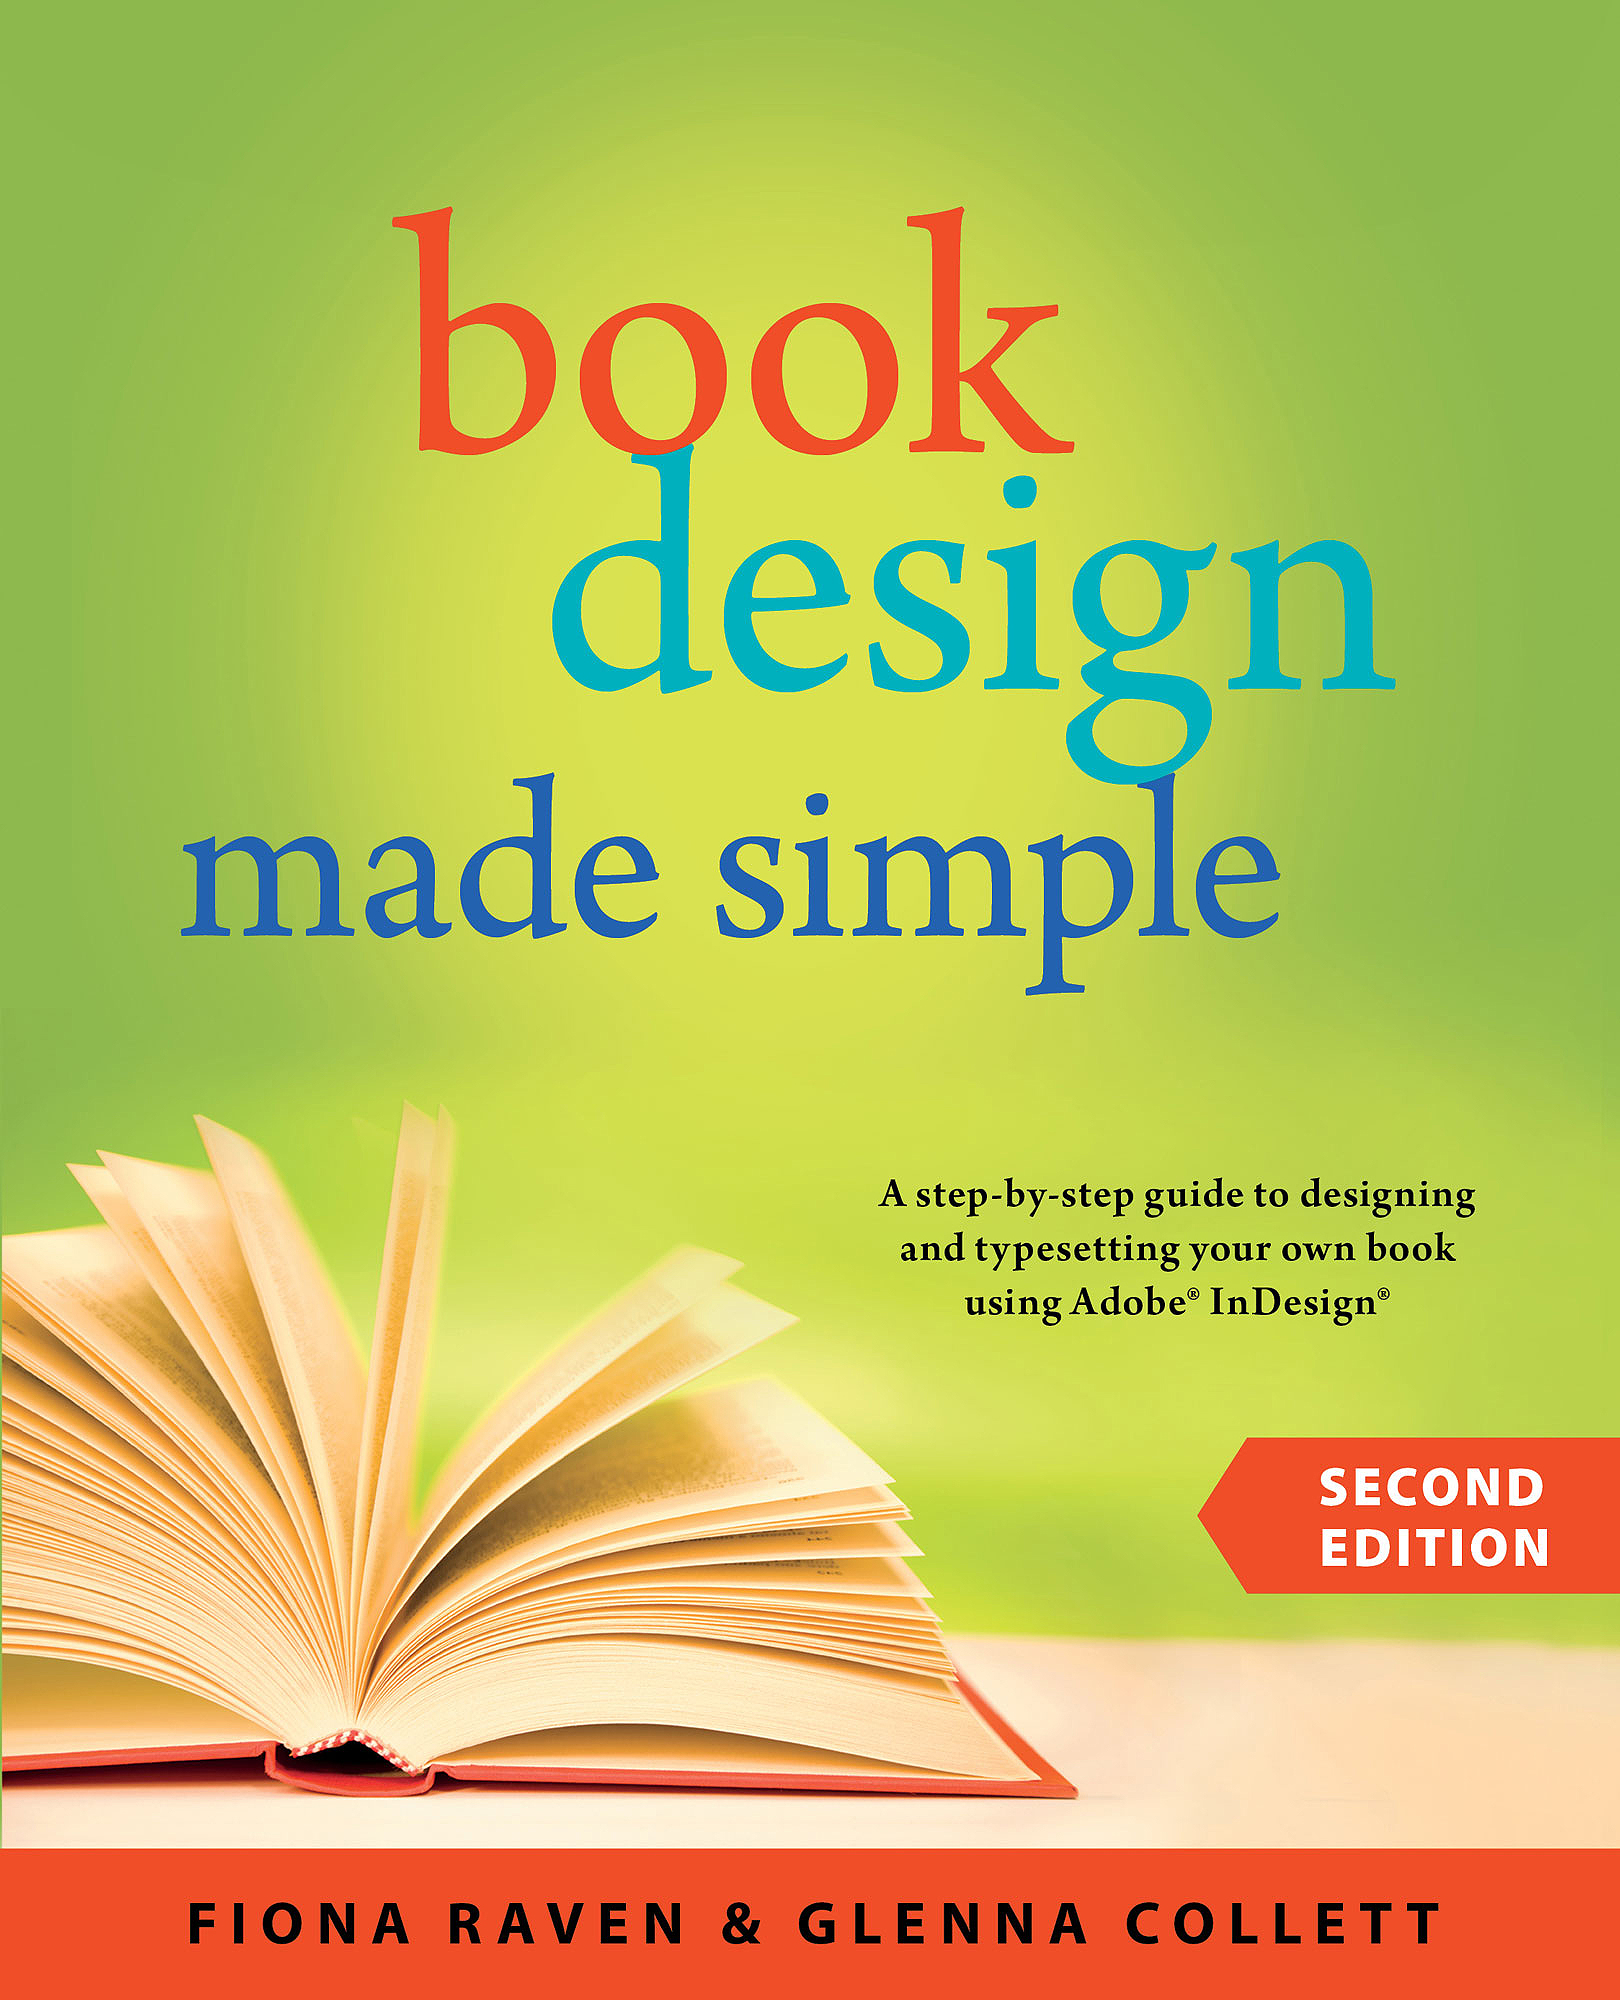 Book Cover Layout Questions : Book cover images design made simple